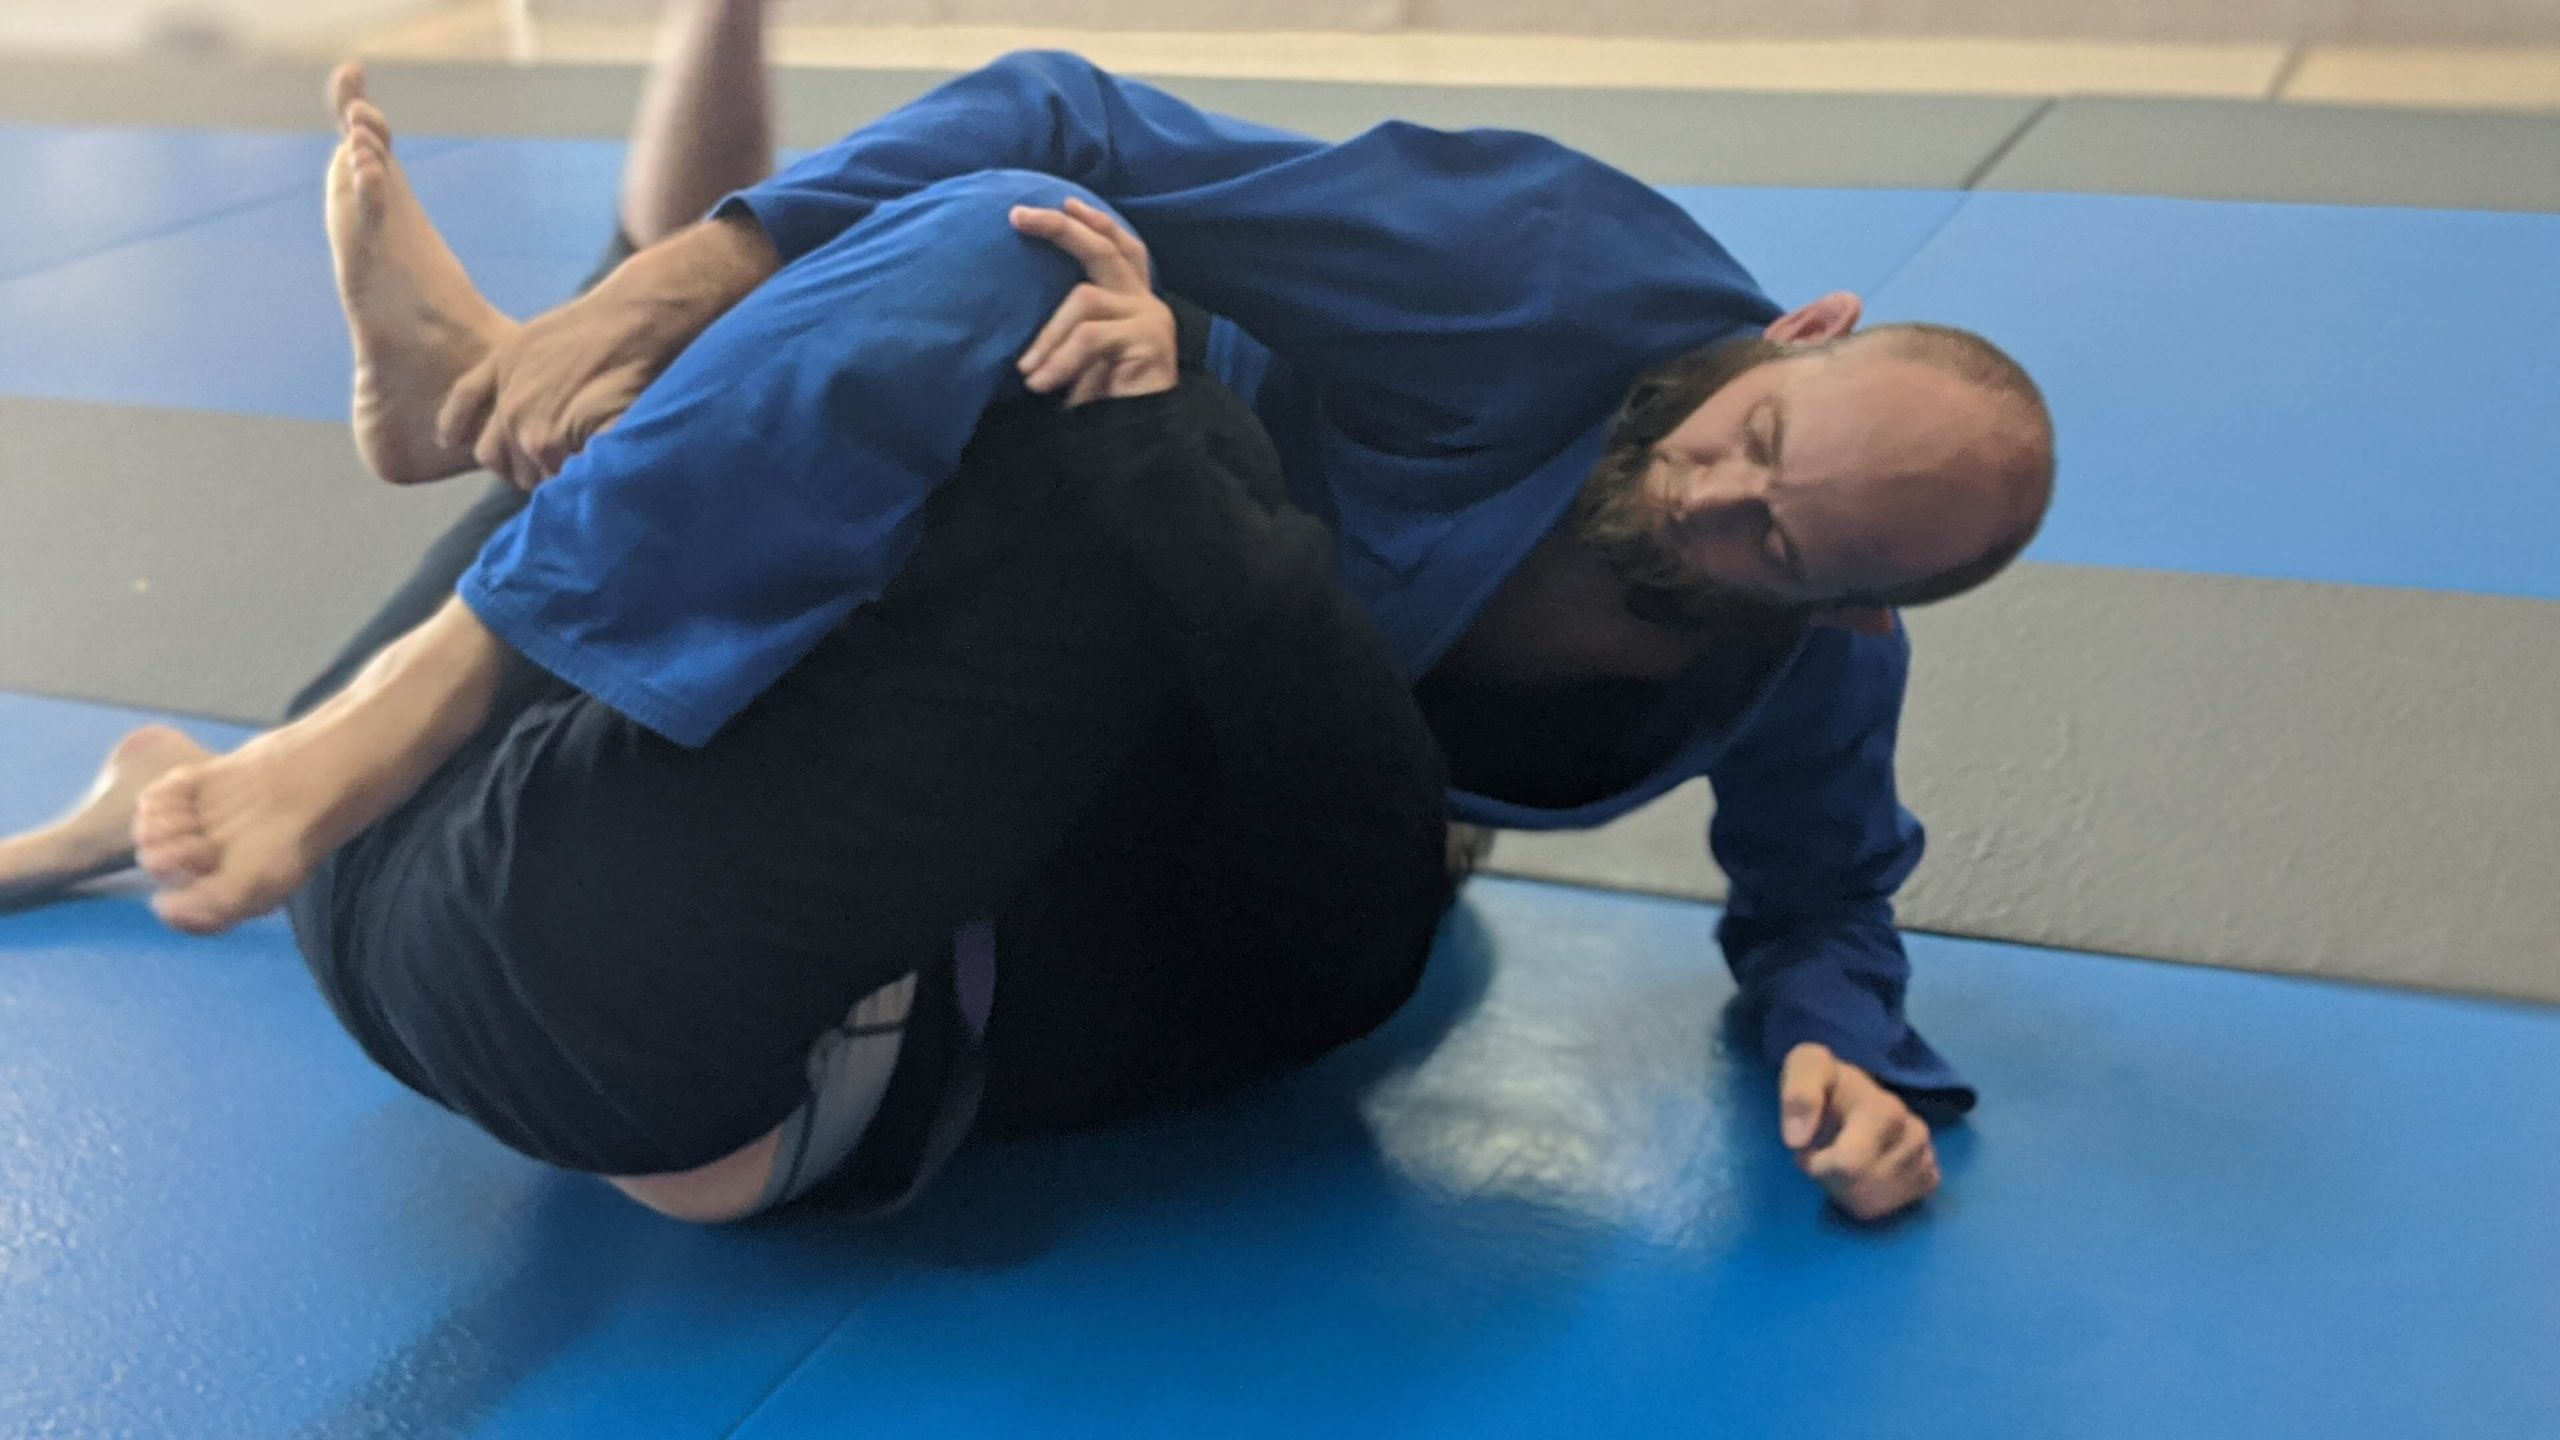 professor lance yager demonstrating brazilian jiu jitsu